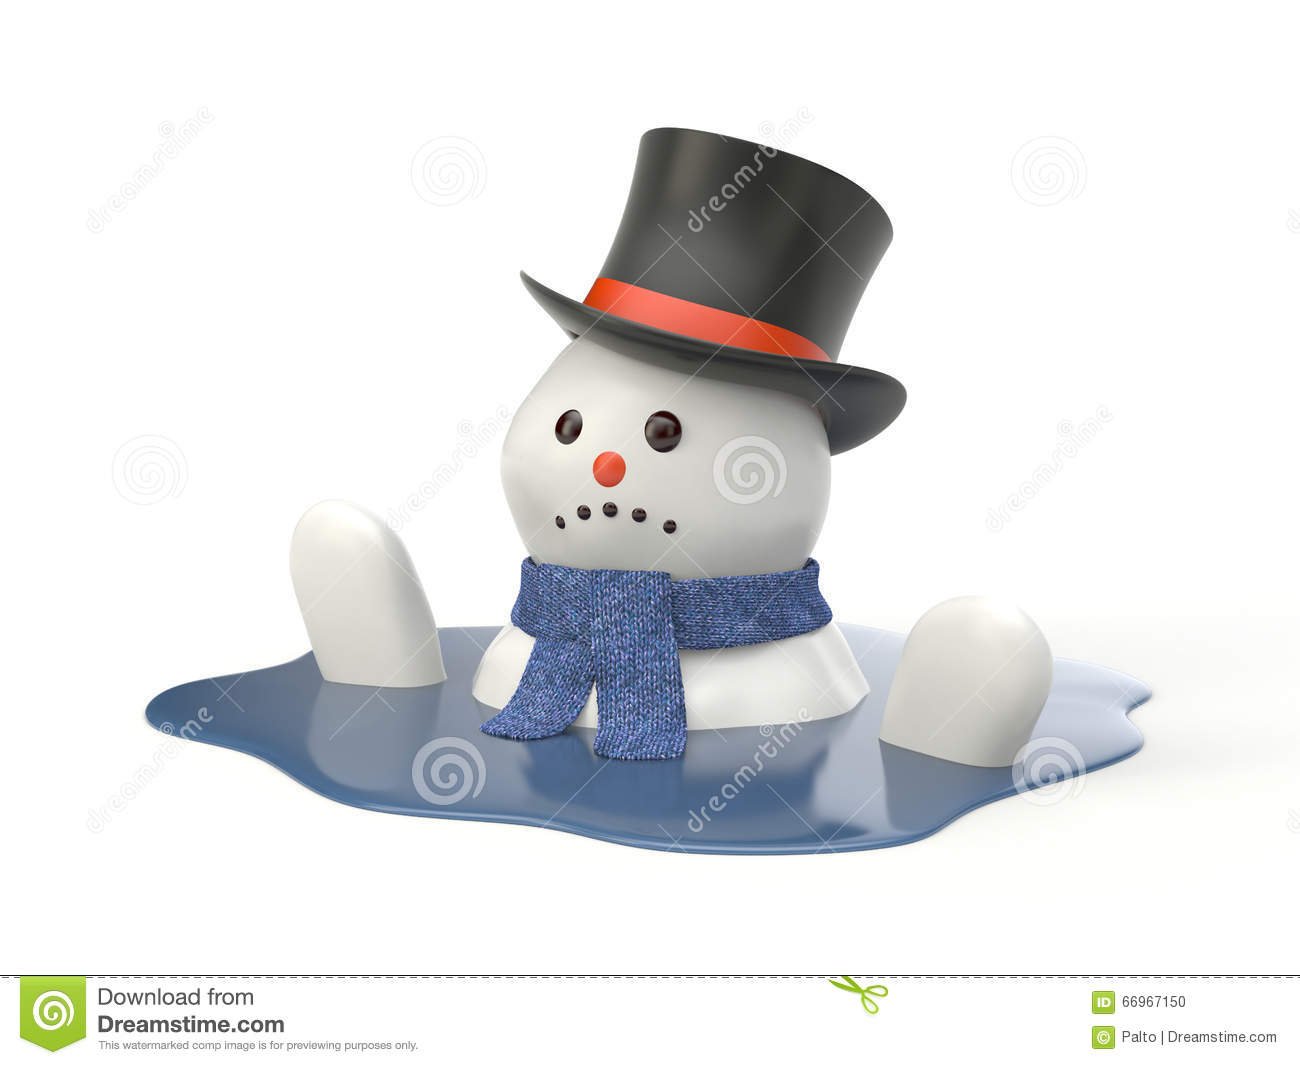 Melting Snowman Clipart Stock Illustrations 7 Melting Snowman Clipart Stock Illustrations Vectors Clipart Dreamstime